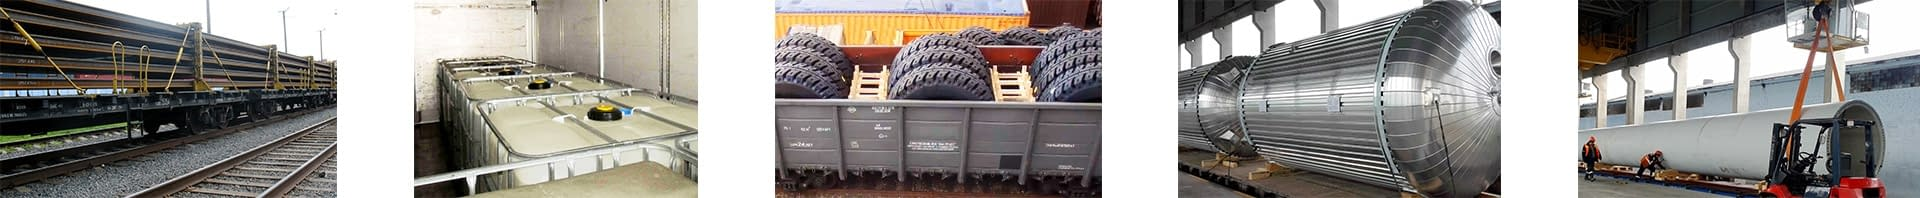 steel beams kegs tyres and windmill parts loaded on open platform wagons